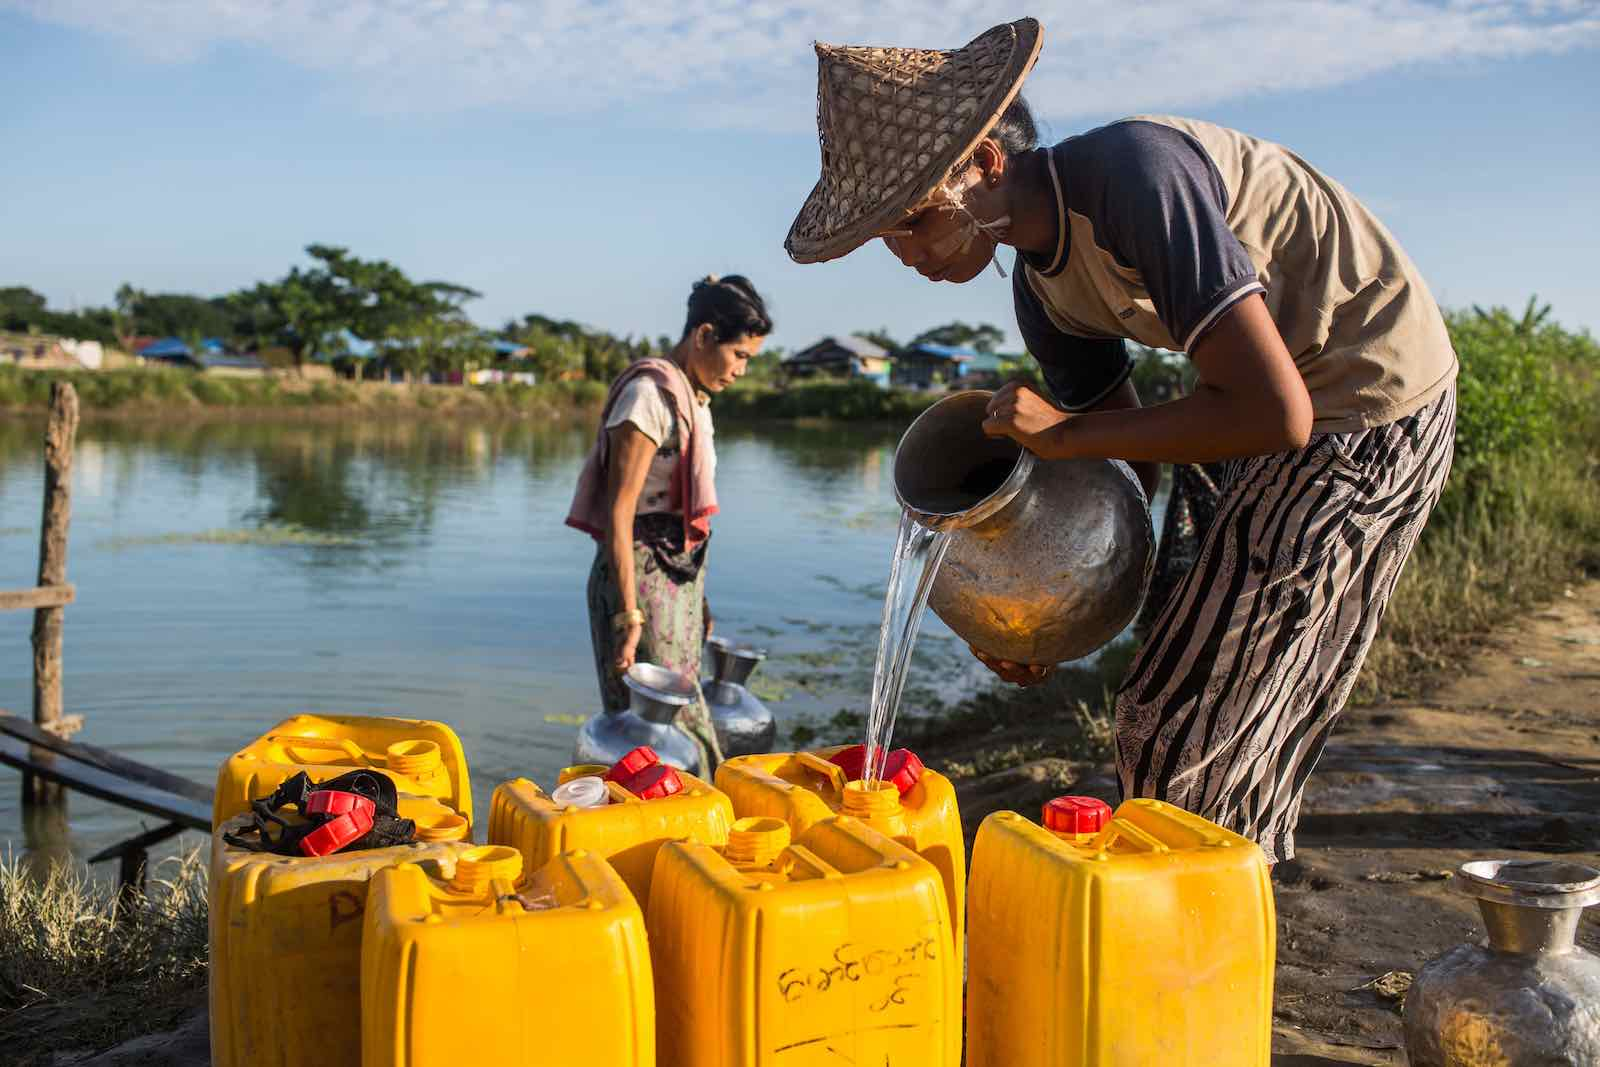 Collecting water in a camp for Rohingya Muslims displaced by the 2012 violence in Rakhine state, November 2017 in Sittwe, Myanmar (Lauren DeCicca/Getty Images)